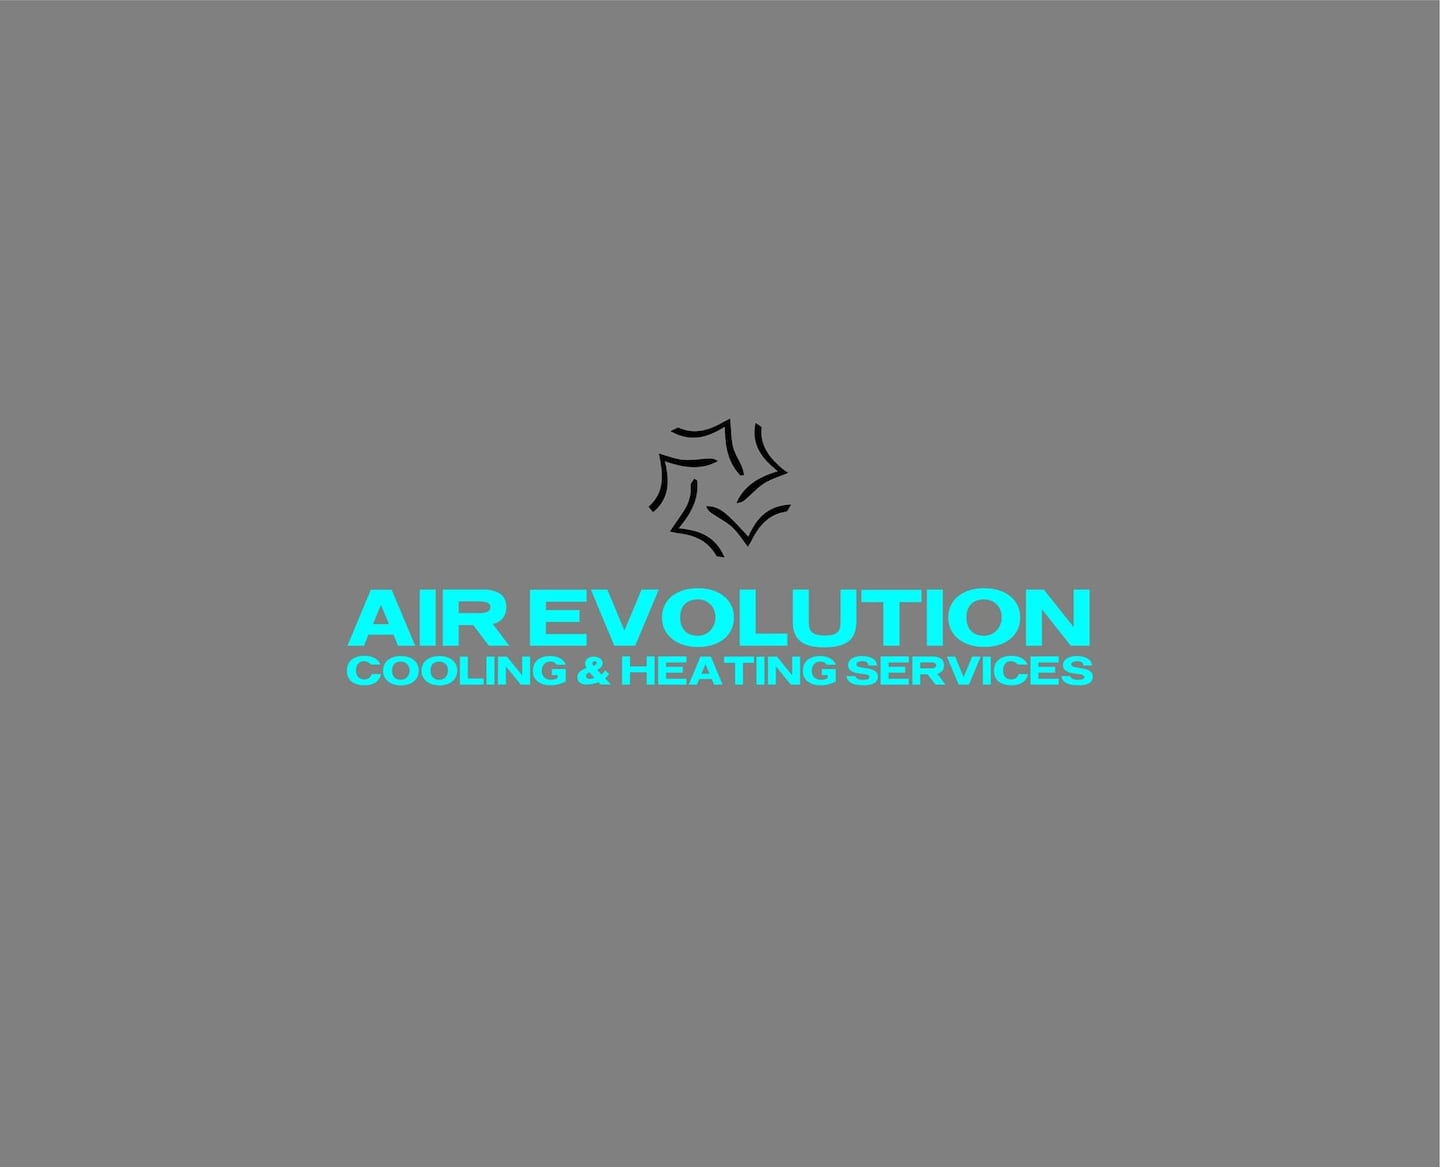 Air Evolution Cooling and Heating Services